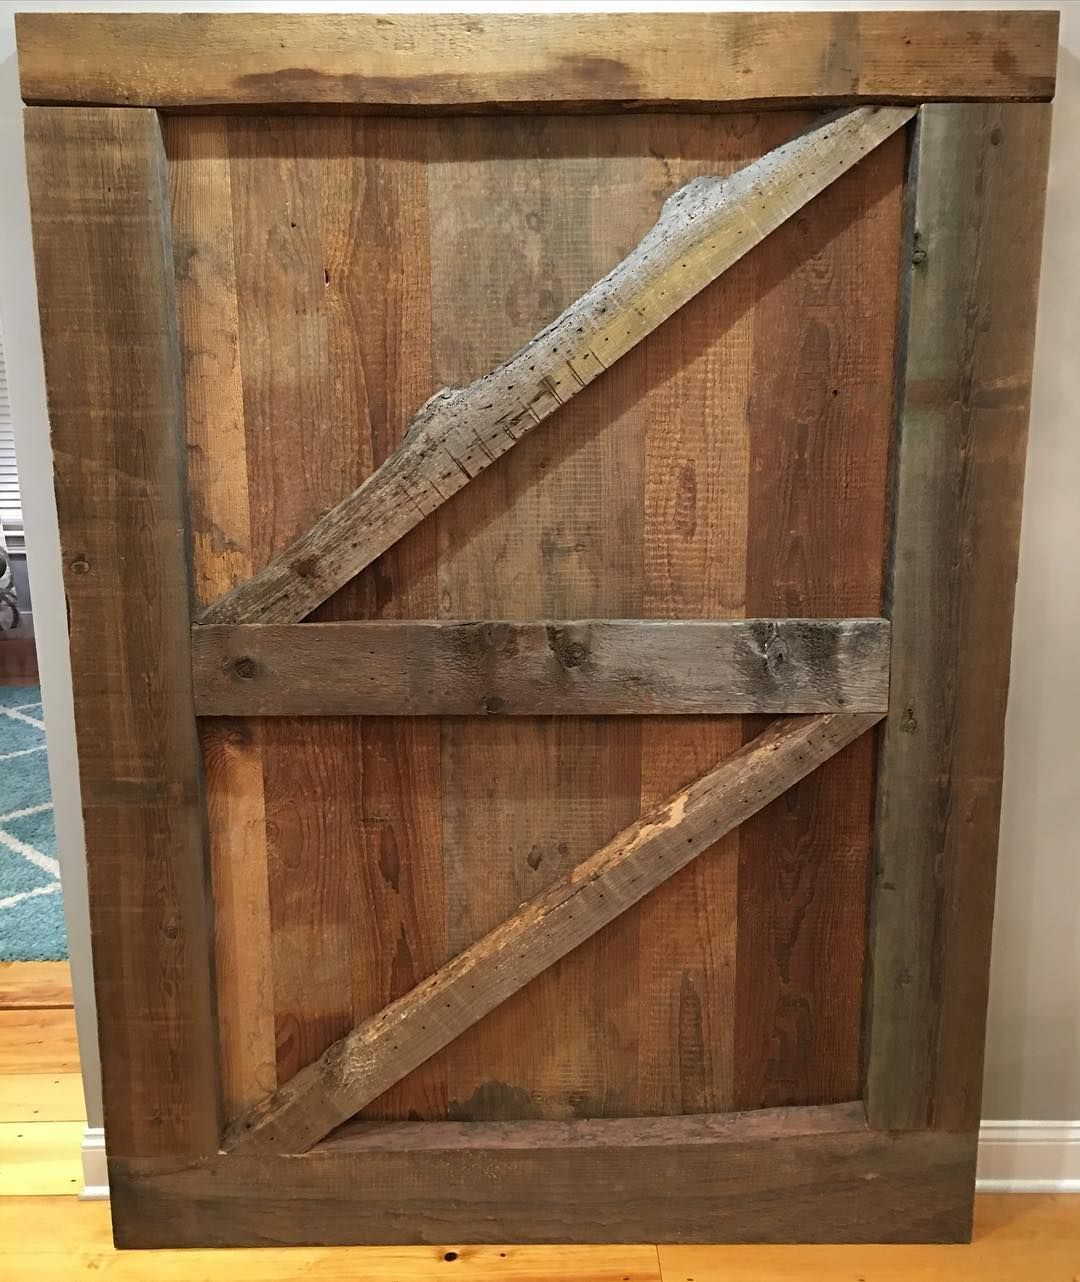 Here S A Closer Look At Our Gorgeous Double Z Brace Barn Door Made From Reclaimed Wood Rusticroo Rusticdecor Barn Door Rustic Decor Reclaimed Wood